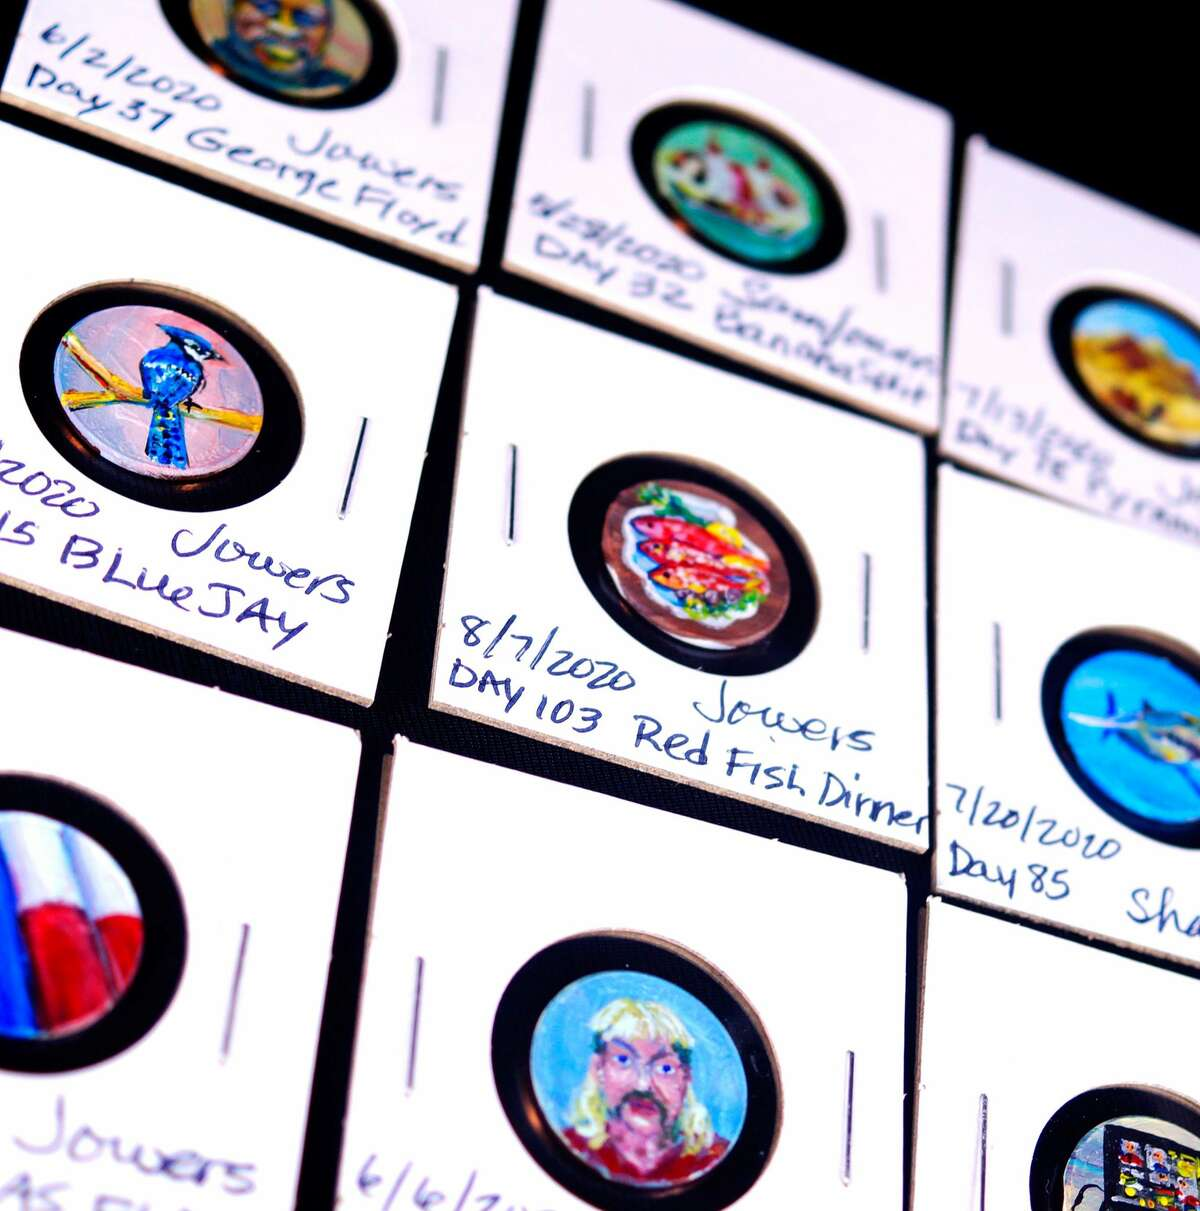 Pearland High School art teacher Sam Jowers' painted pennies are on display Aug. 23 through Sept. 5 at Alvin Community College. The pennies are part of a project she created to build community among her students during the COVID-19 pandemic. Learn more at https://bit.ly/3fSe9wW.